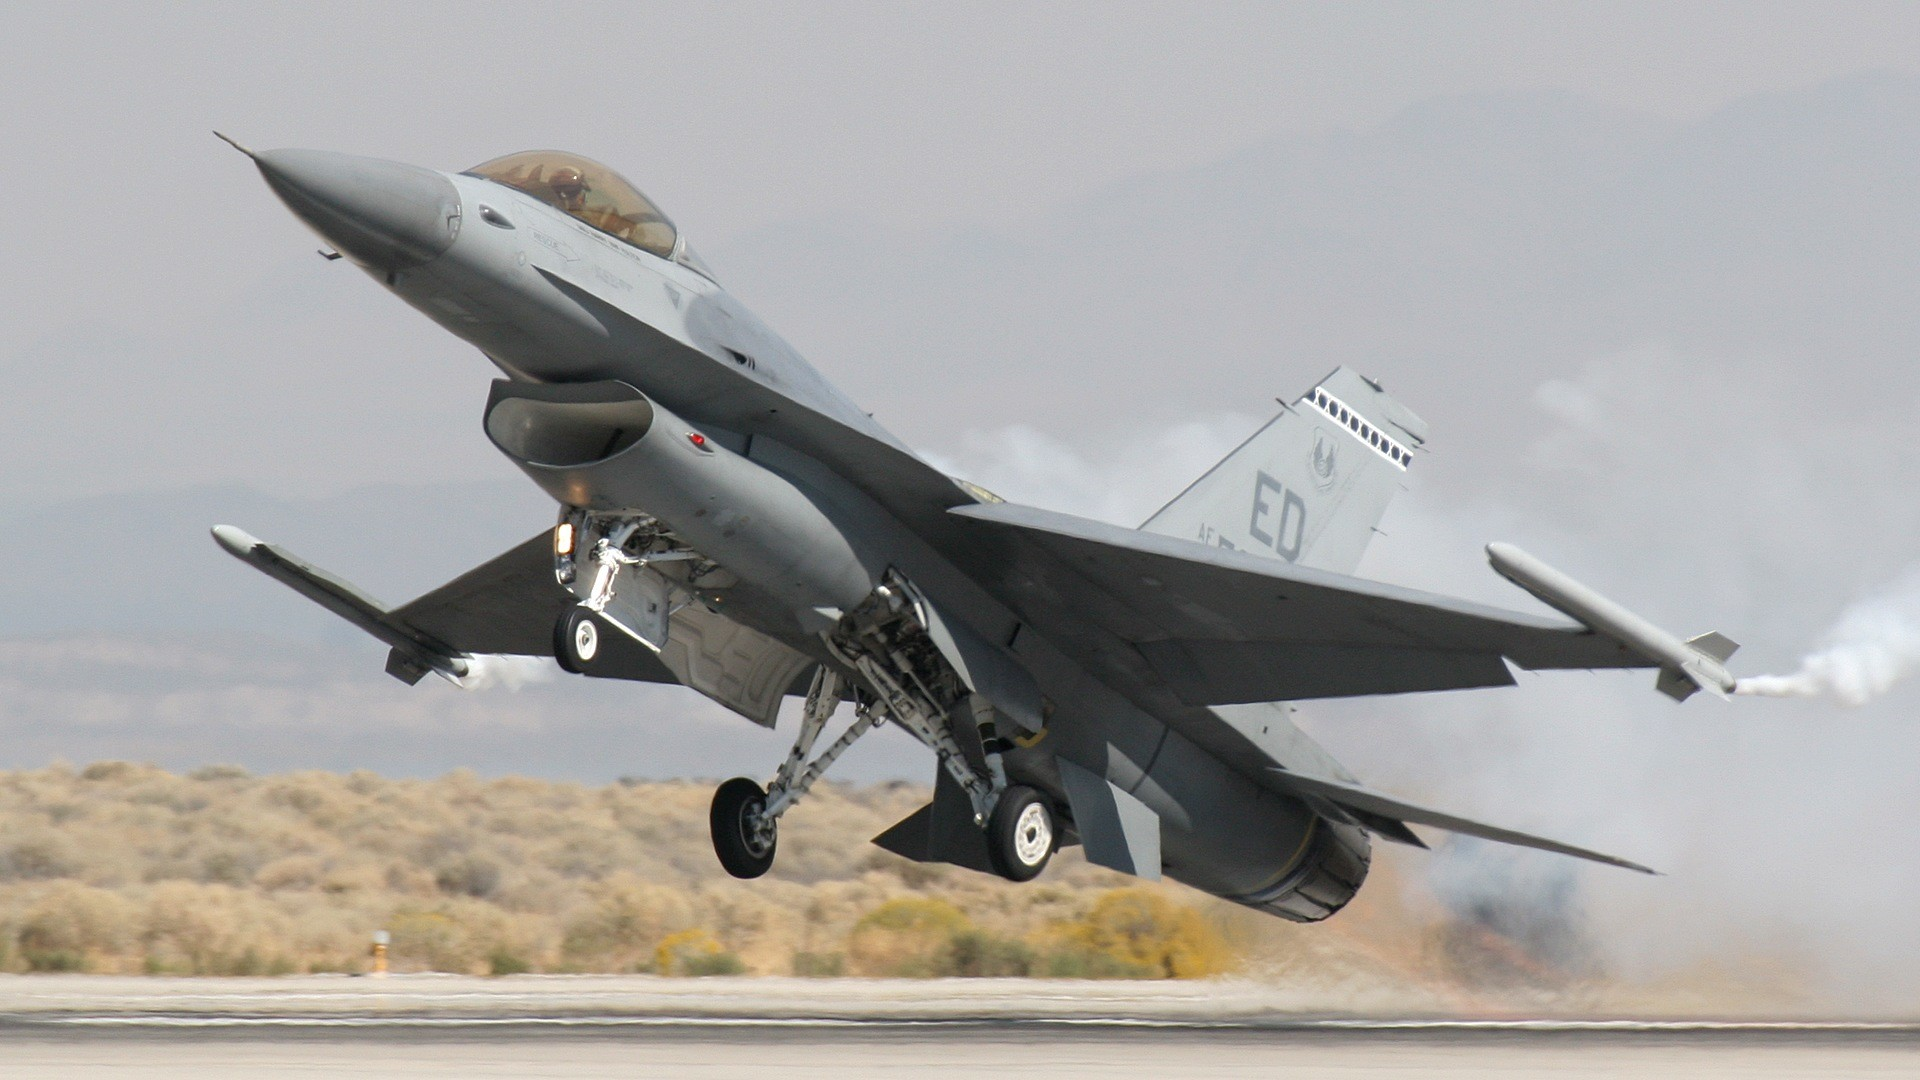 Air Force Wallpaper And Screensavers 68 Images